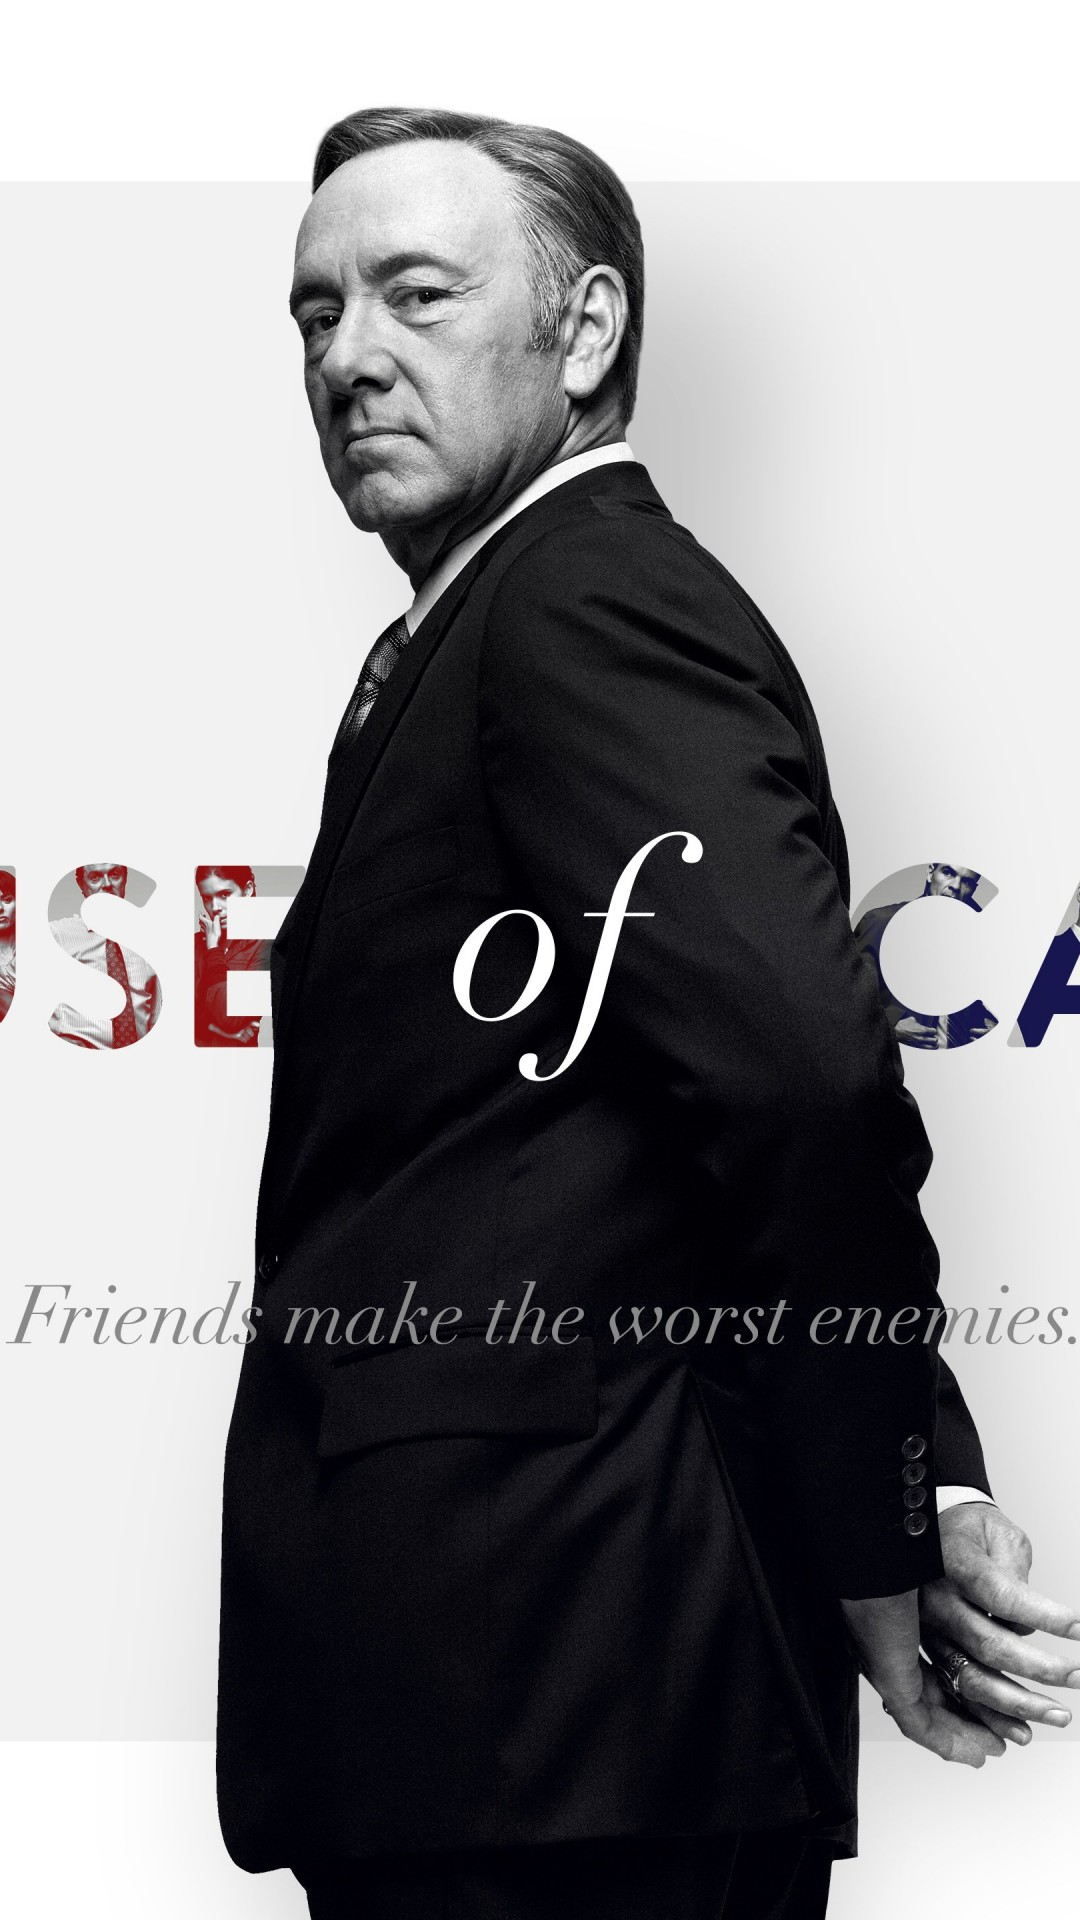 Frank Underwood - House of Cards Wallpaper for SONY Xperia Z2